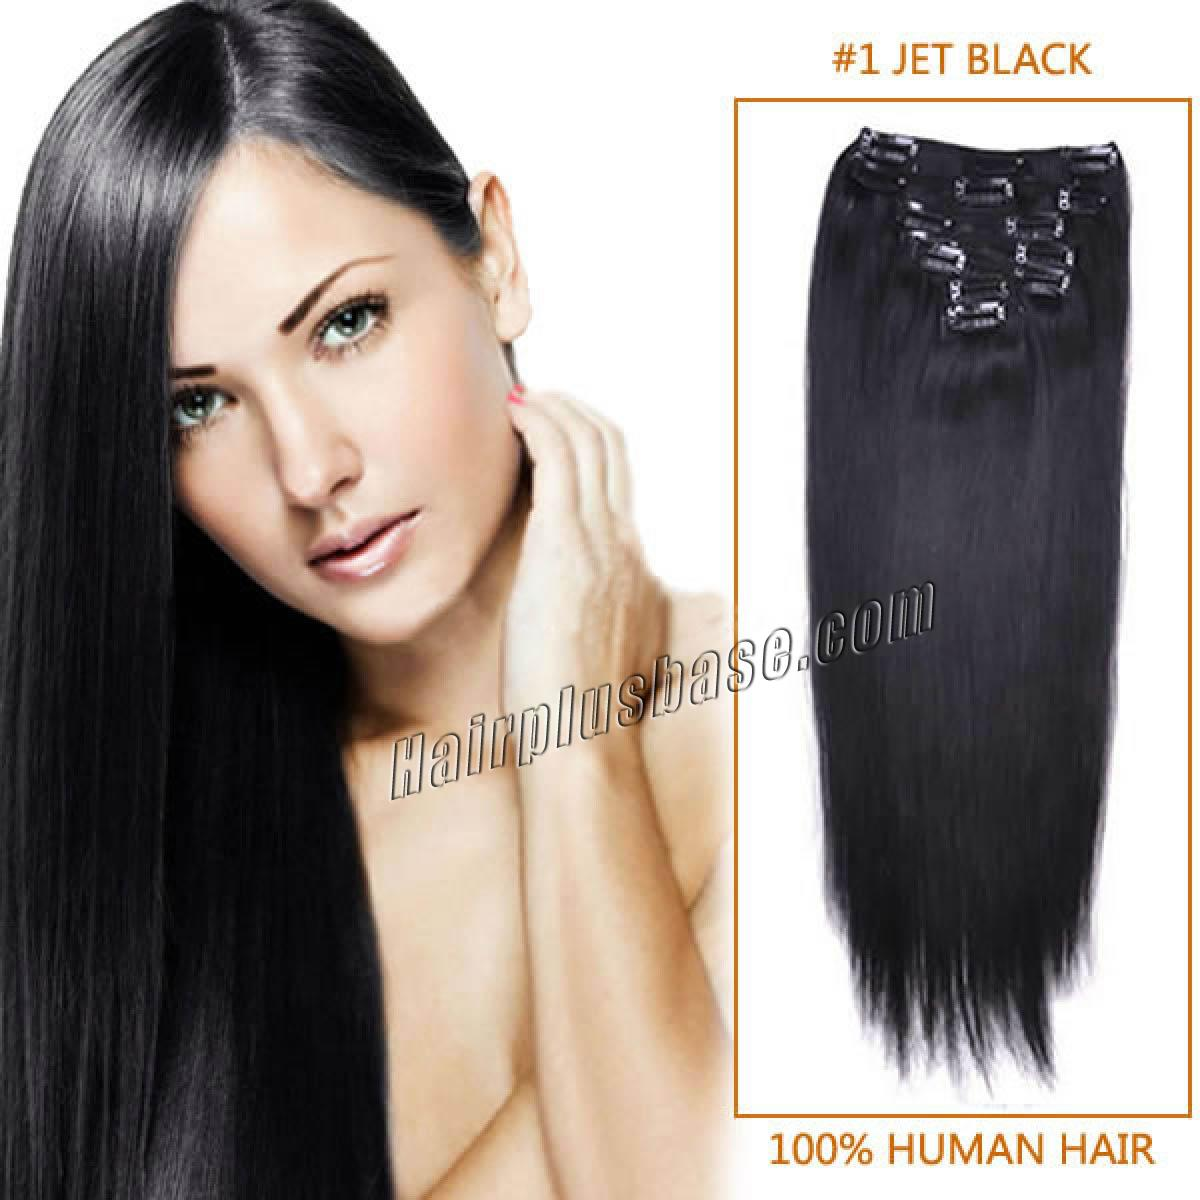 Cheap human hair extensions ombre clip in hair extensions online hair extensions 32 inch 1 jet black clip in human pmusecretfo Gallery